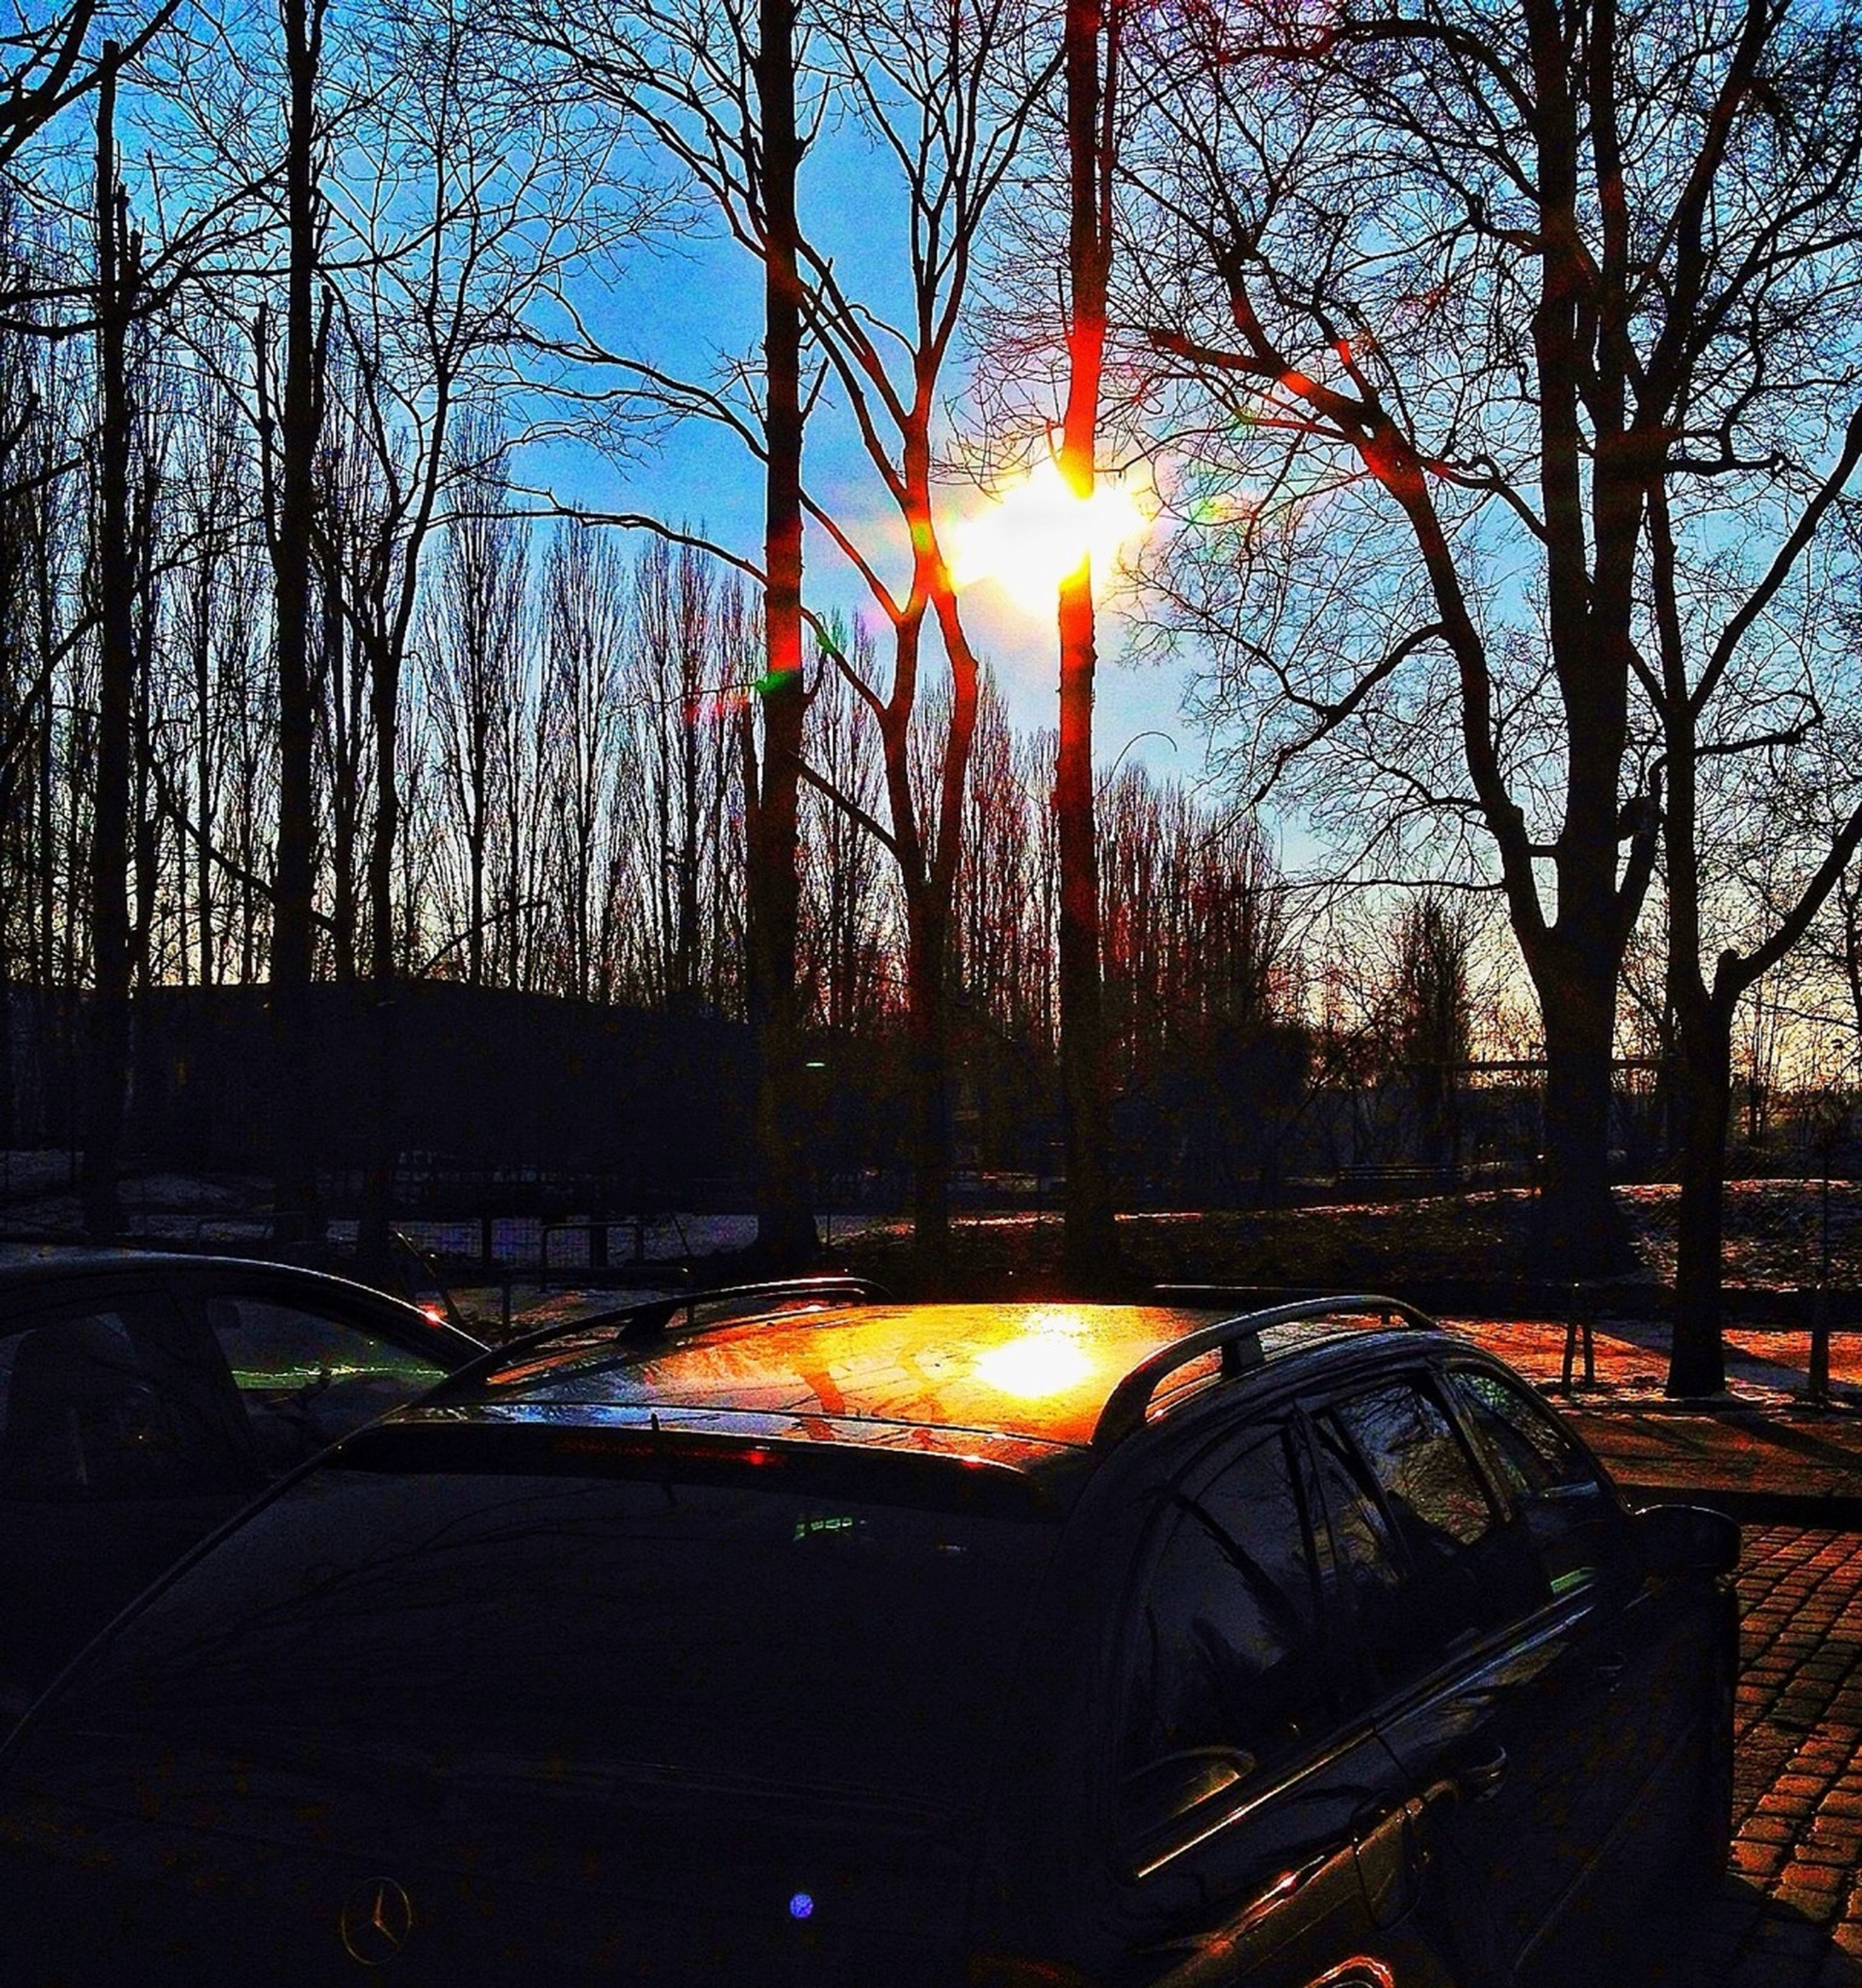 sunset, sun, tree, sunlight, sunbeam, orange color, silhouette, glowing, bare tree, sky, lens flare, burning, nature, flame, transportation, fire - natural phenomenon, outdoors, no people, car, tranquility